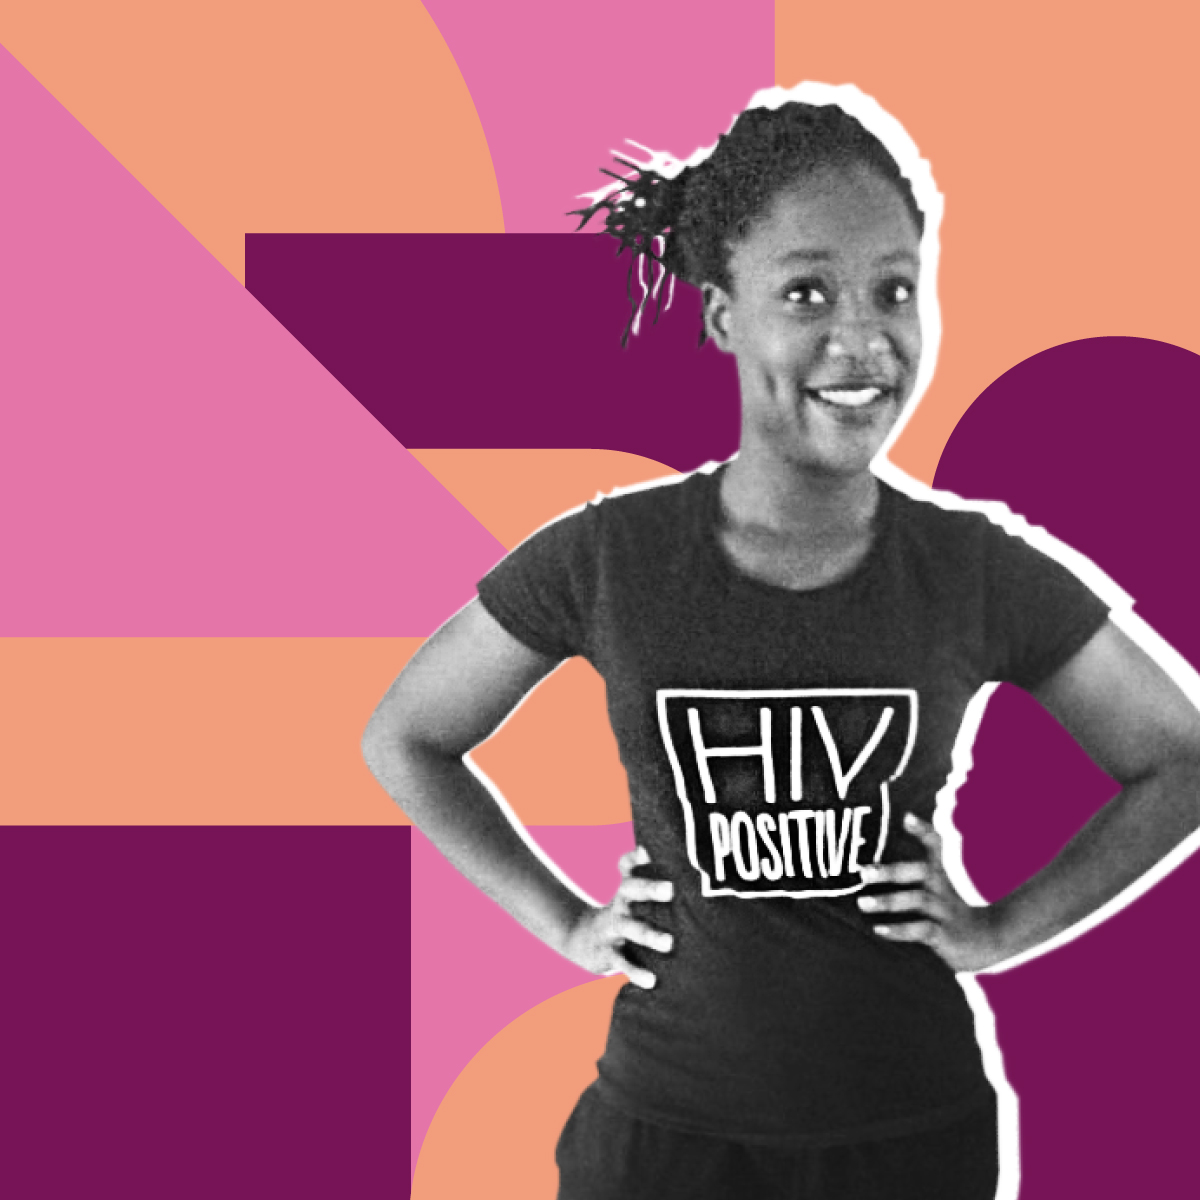 This powerful activist and mentor is fighting HIV stigma in Uganda - ONE